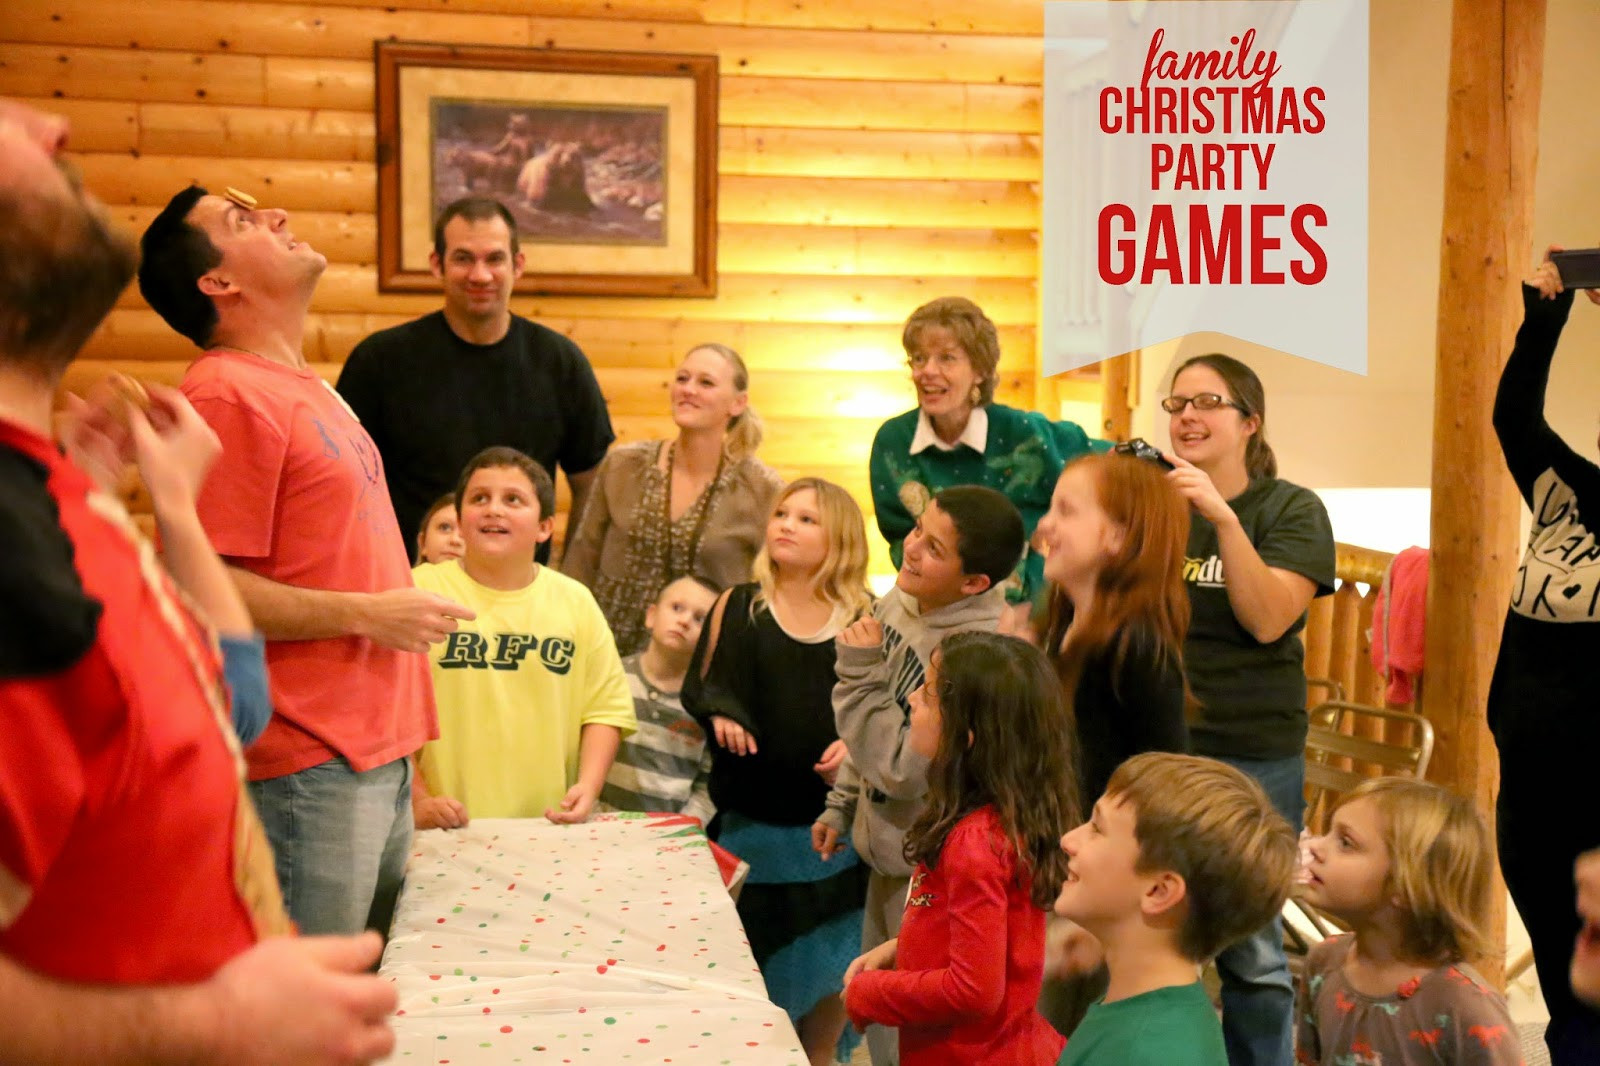 Christmas Party Ideas For Families  Notable Nest Fun Family Christmas Party Games to Try